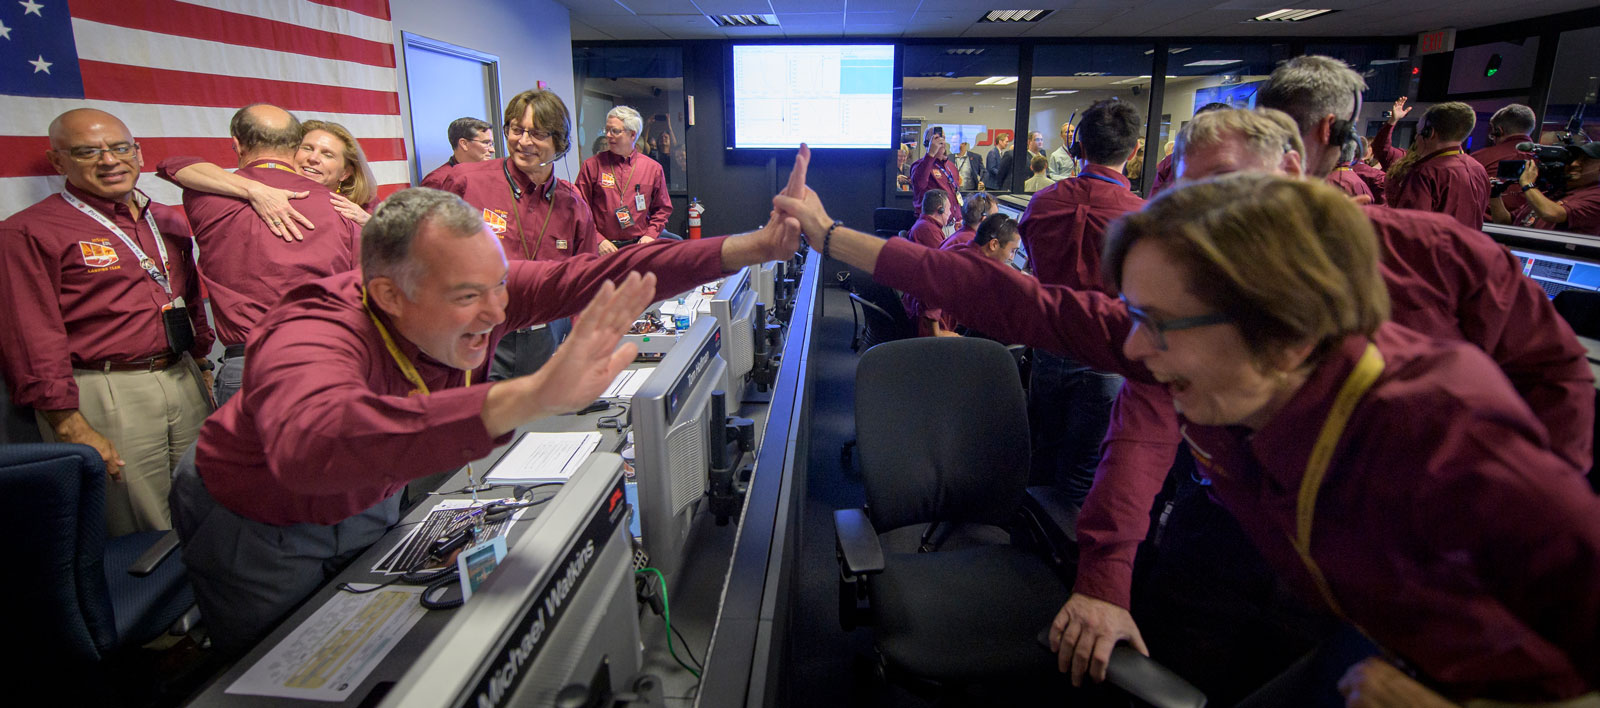 InSight's Landing Celebration